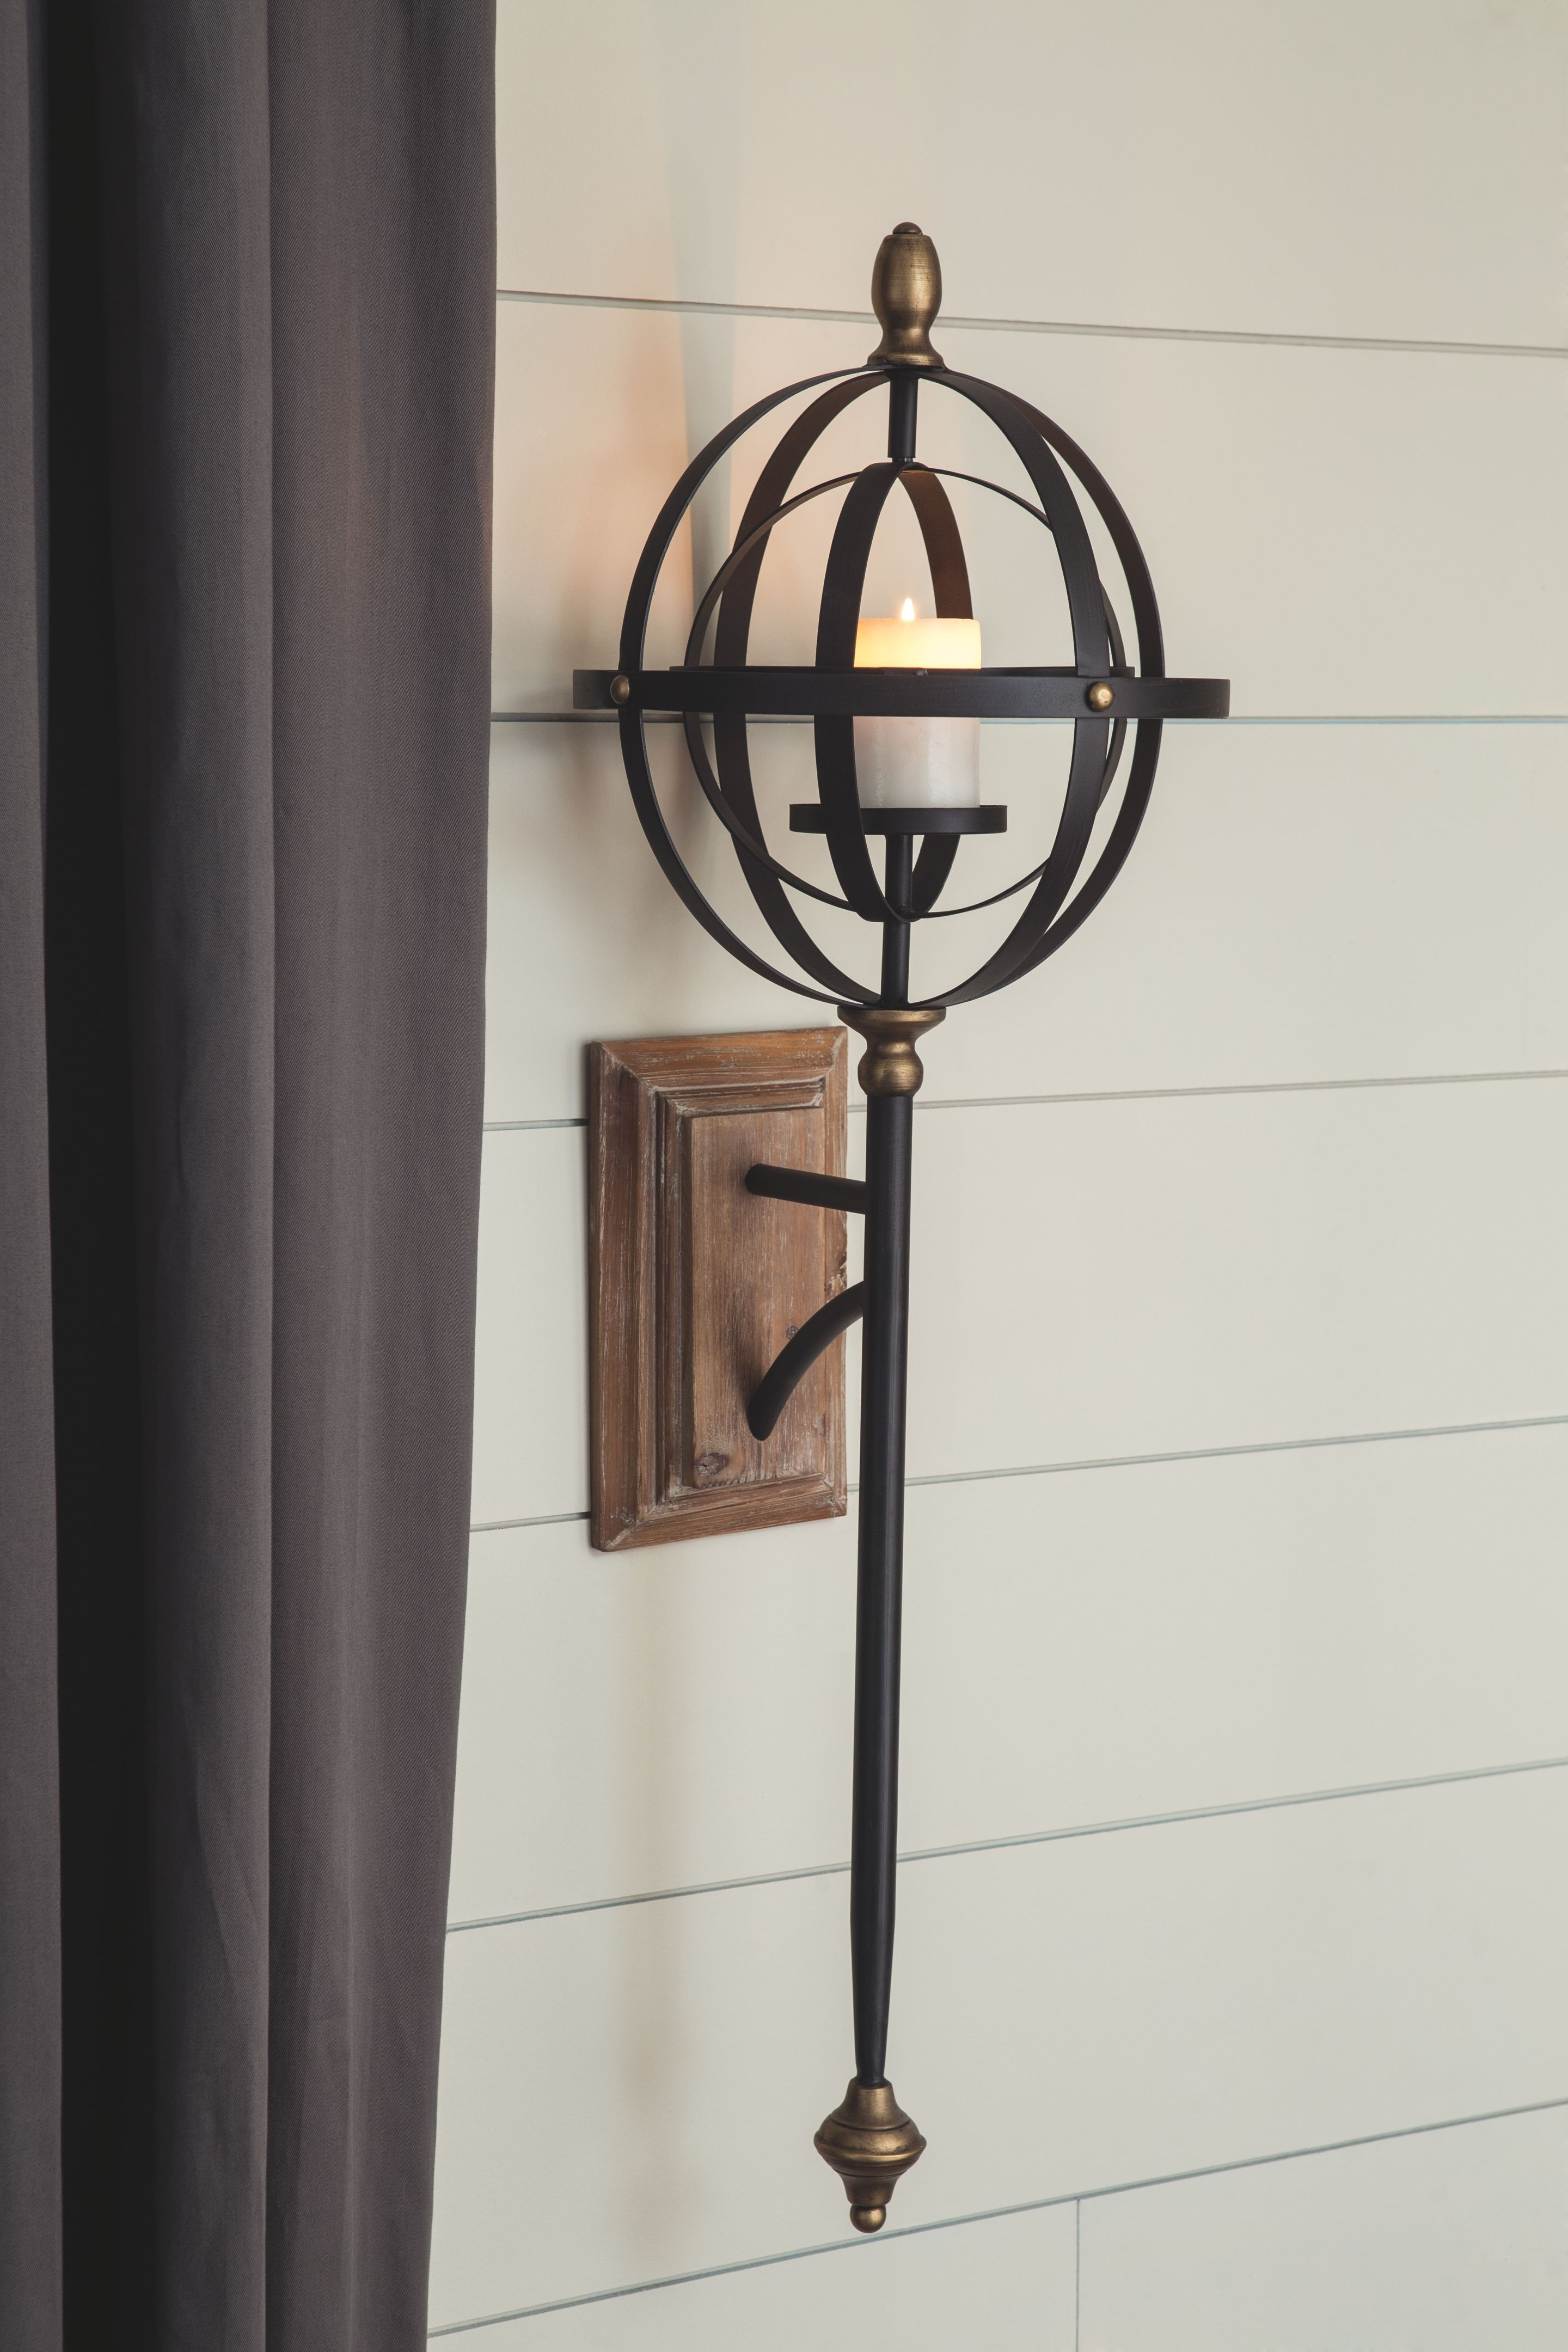 Dina Black Gold Finish Wall Sconce In 2021 Wall Sconces Sconces Wall